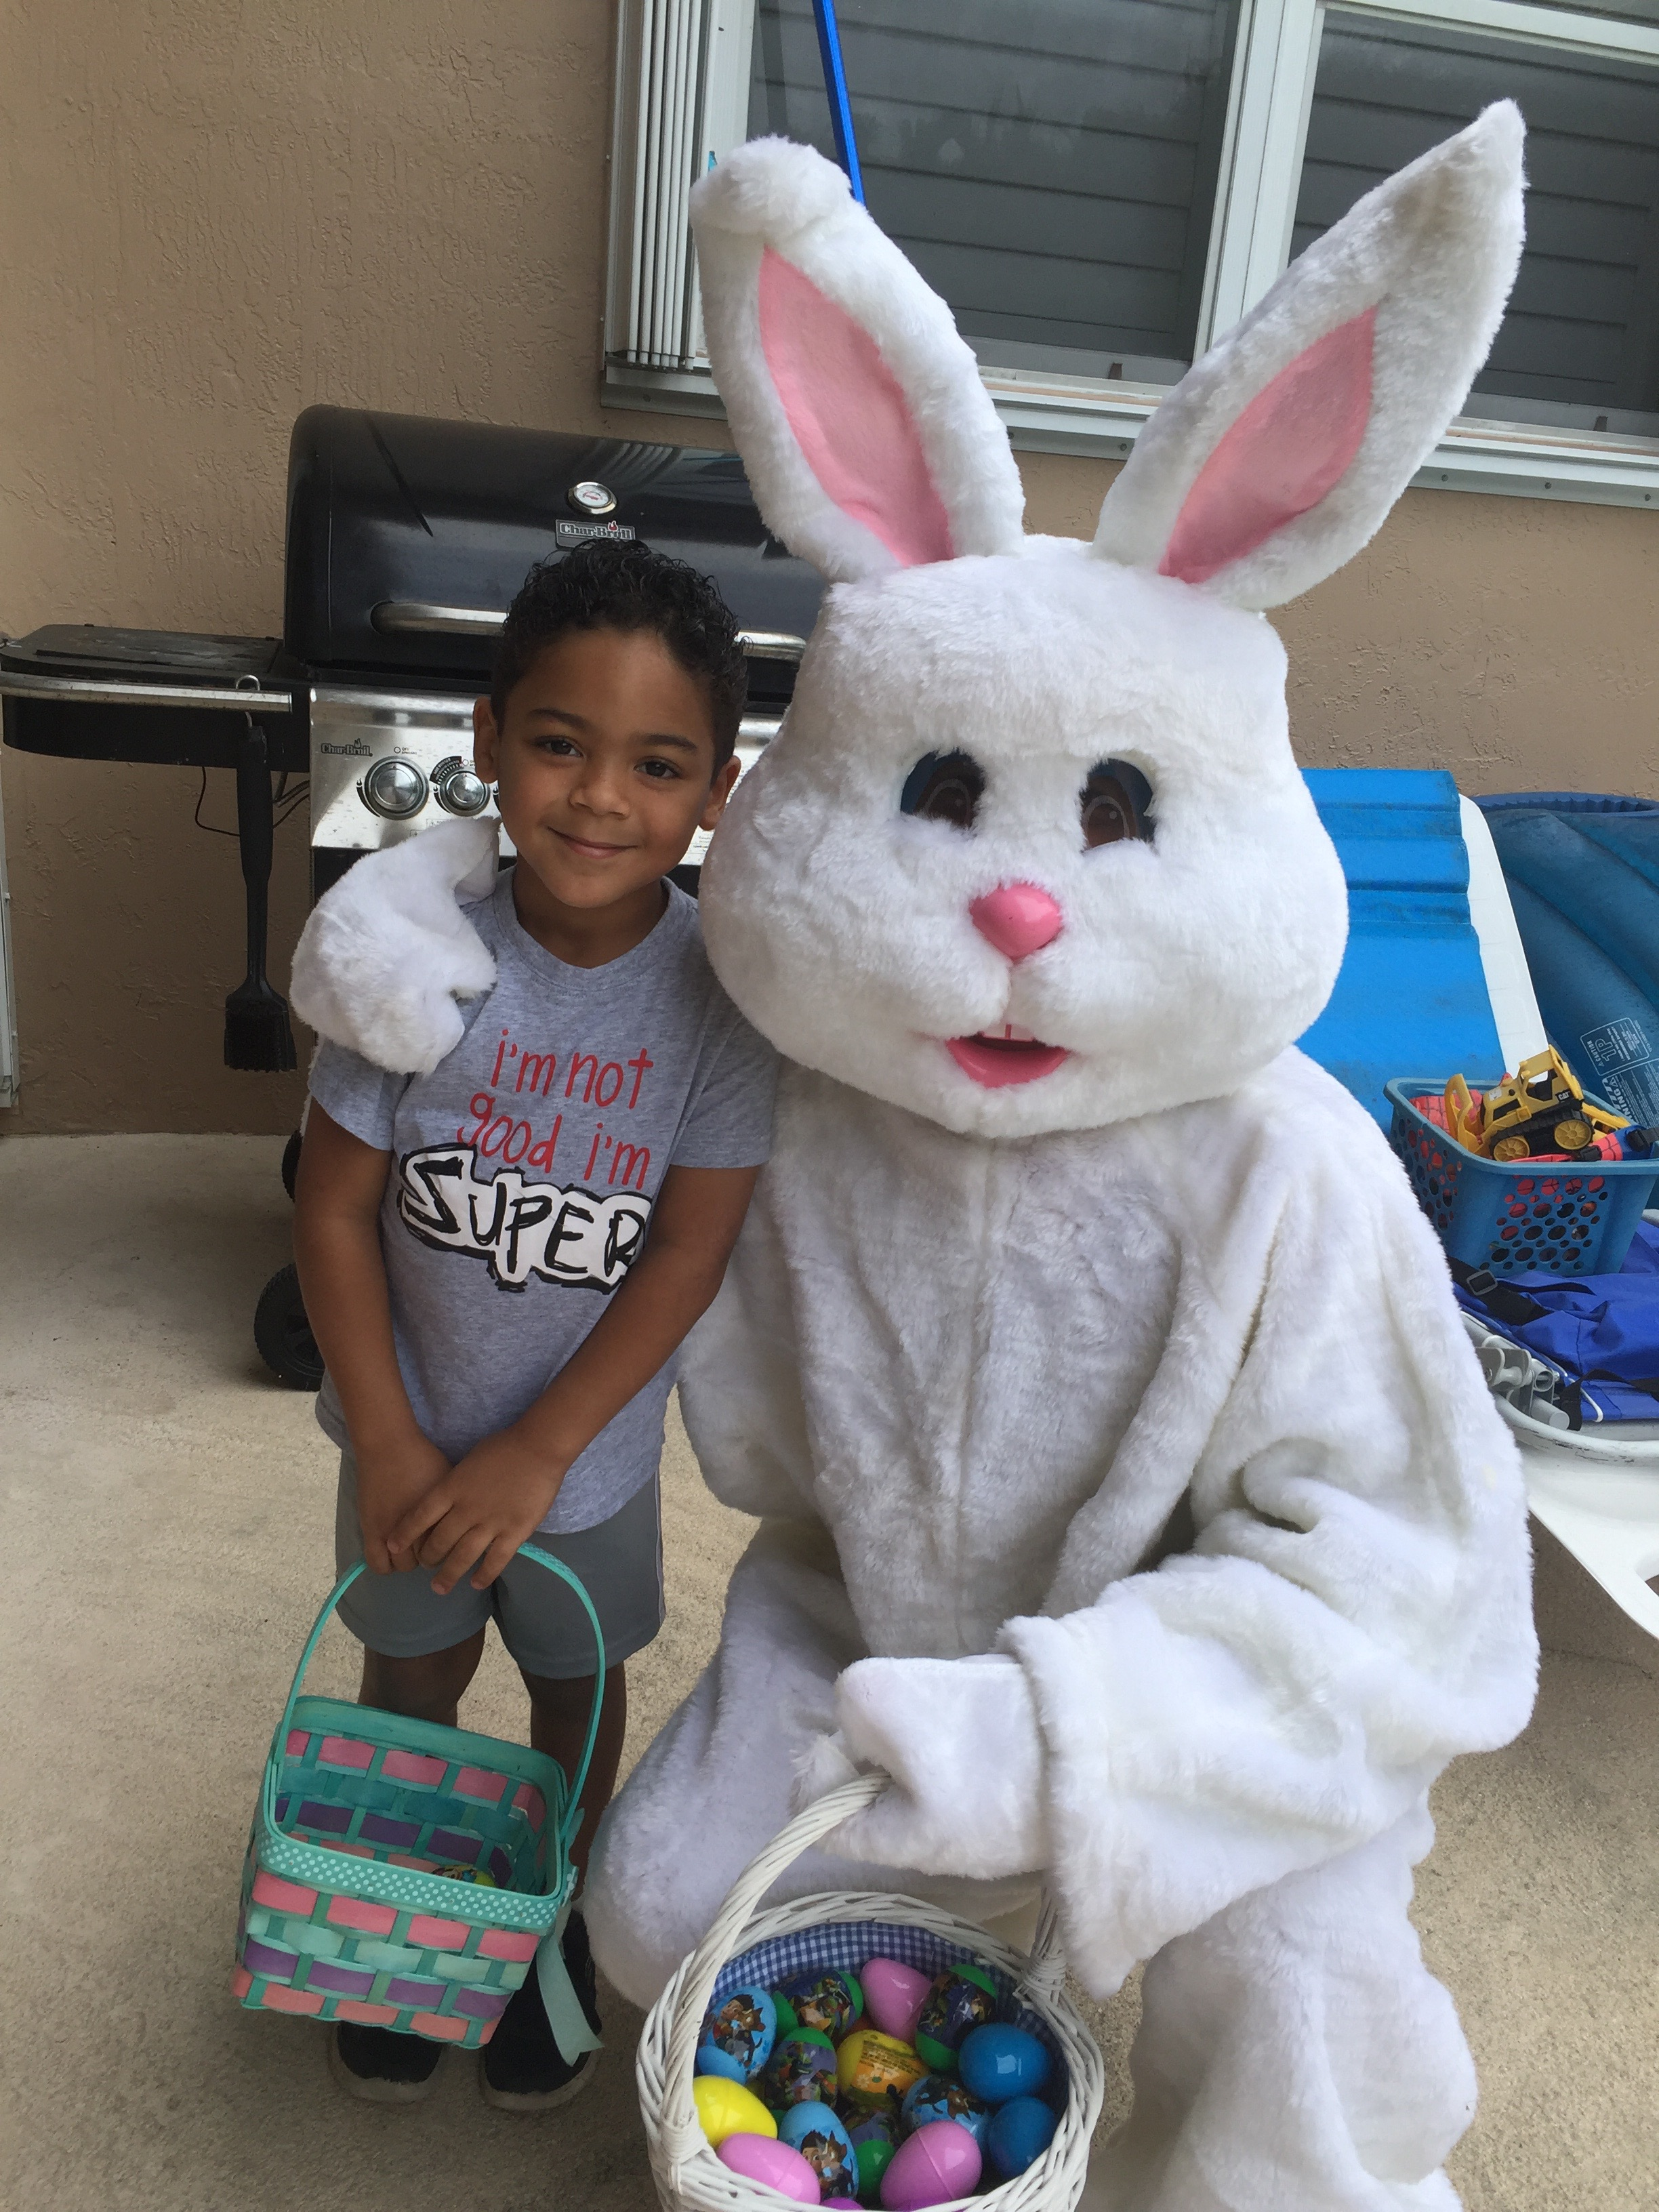 Our grandson with the Easter Bunny